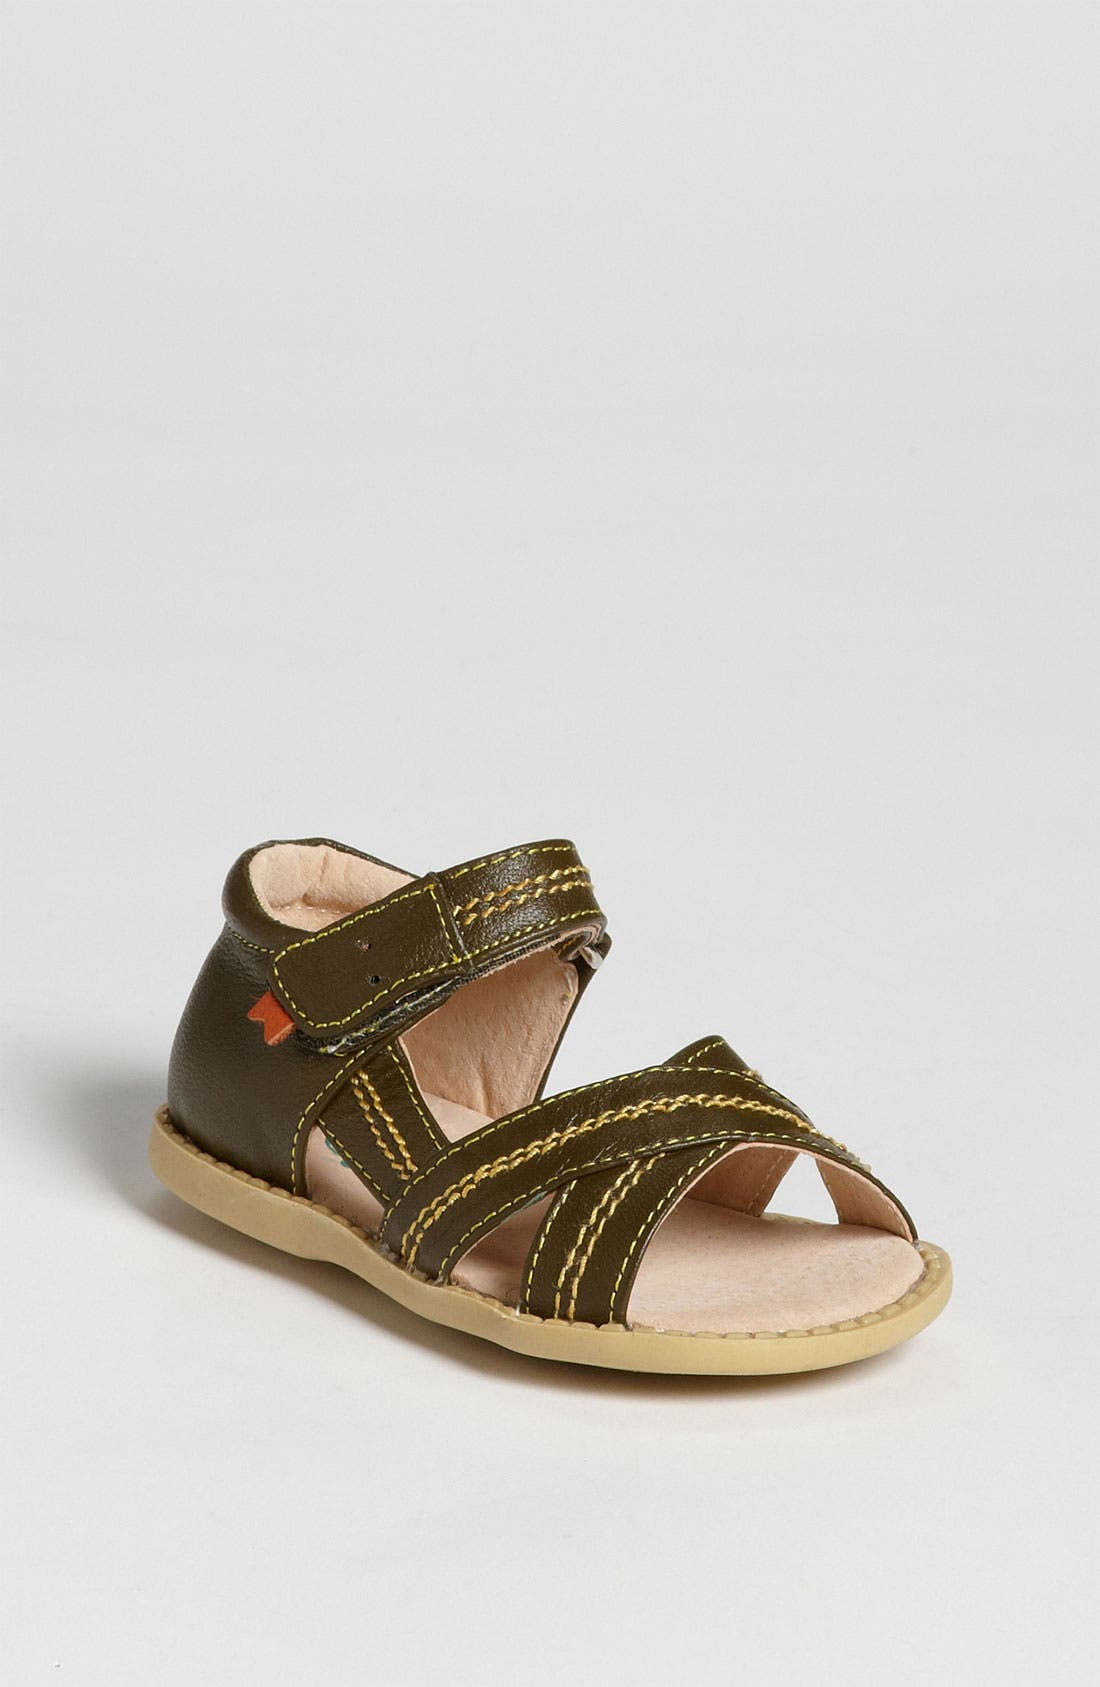 Alternate Image 1 Selected - Livie & Luca 'Boa' Sandal (Baby, Walker & Toddler)